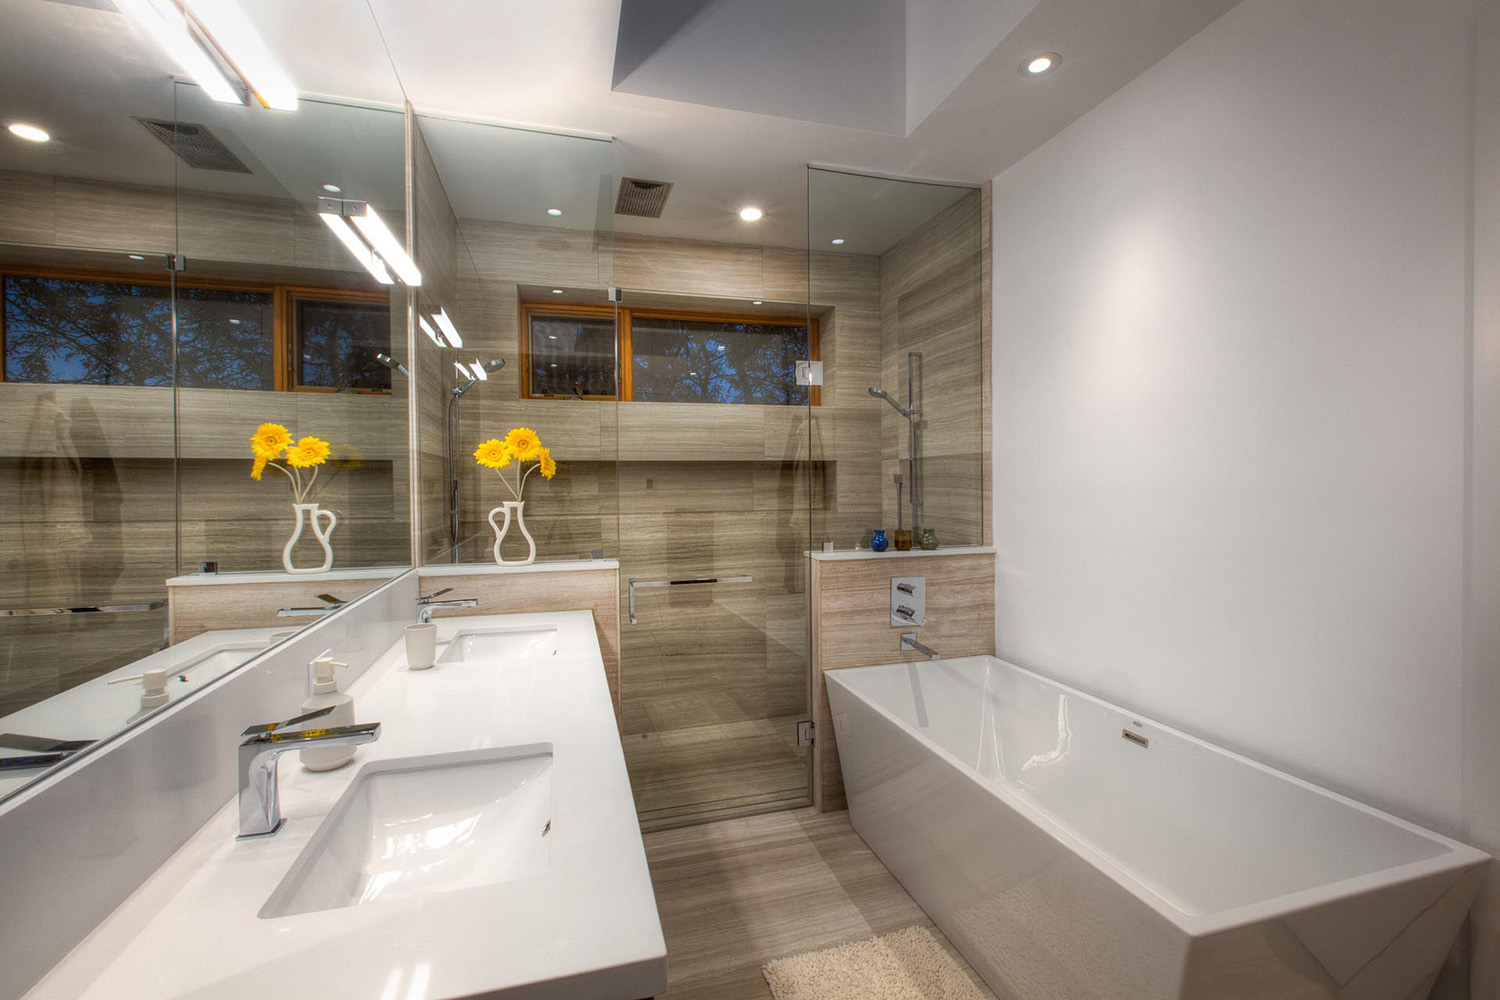 Bathroom with free standing tube and stainless steel fittings half height marble wall and glass shower enclosure